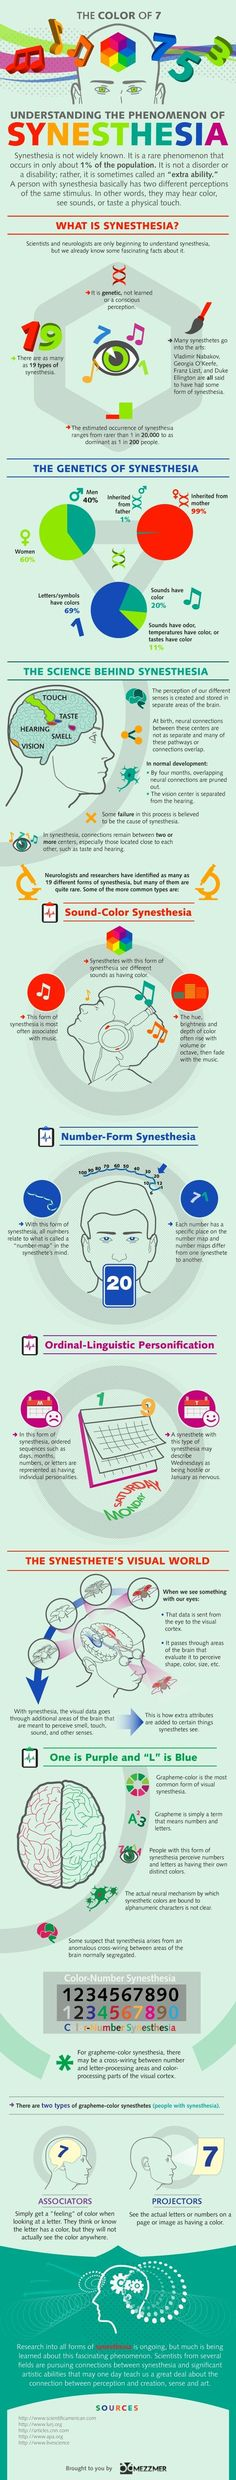 Understanding The Phenomenon Of Synesthesia [Infographic] - Data Visualization Encyclopedia, Information Technology, Symbols, Posters, Infographic